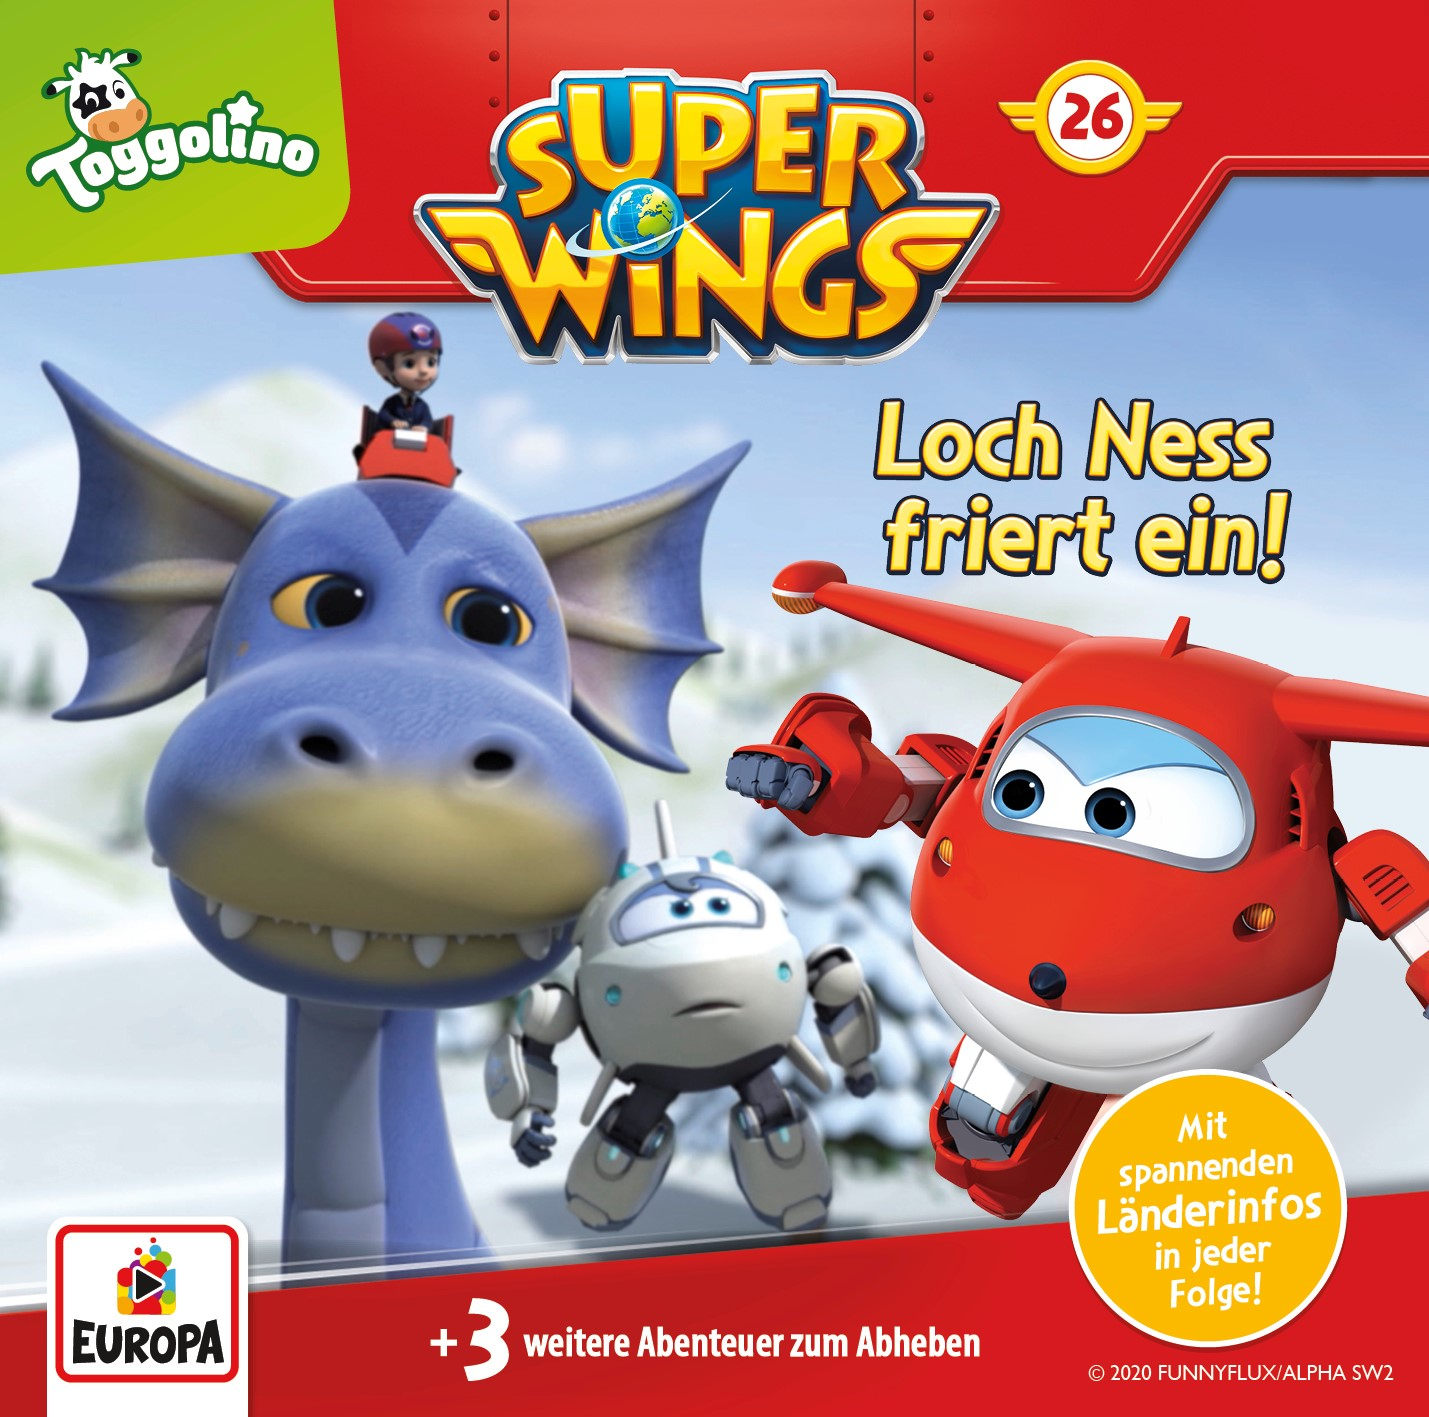 Super Wings: Loch Ness friert ein!